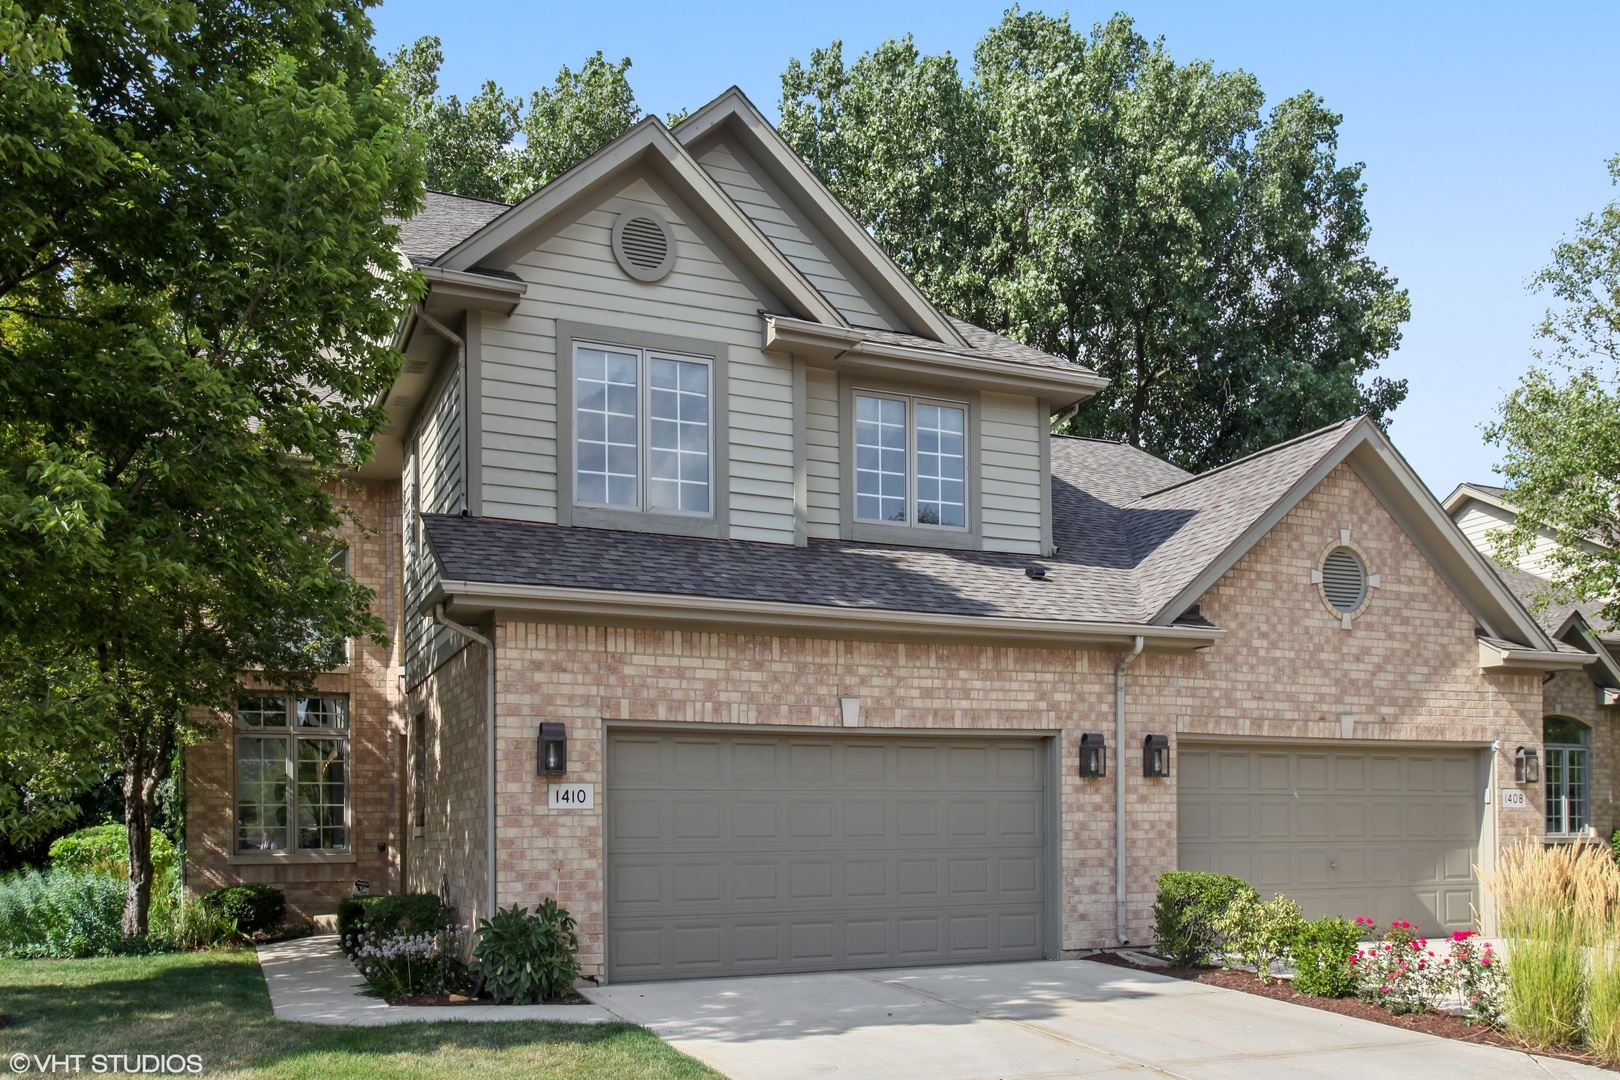 1410 49th Court S, Western Springs, IL 60558 - #: 10724755